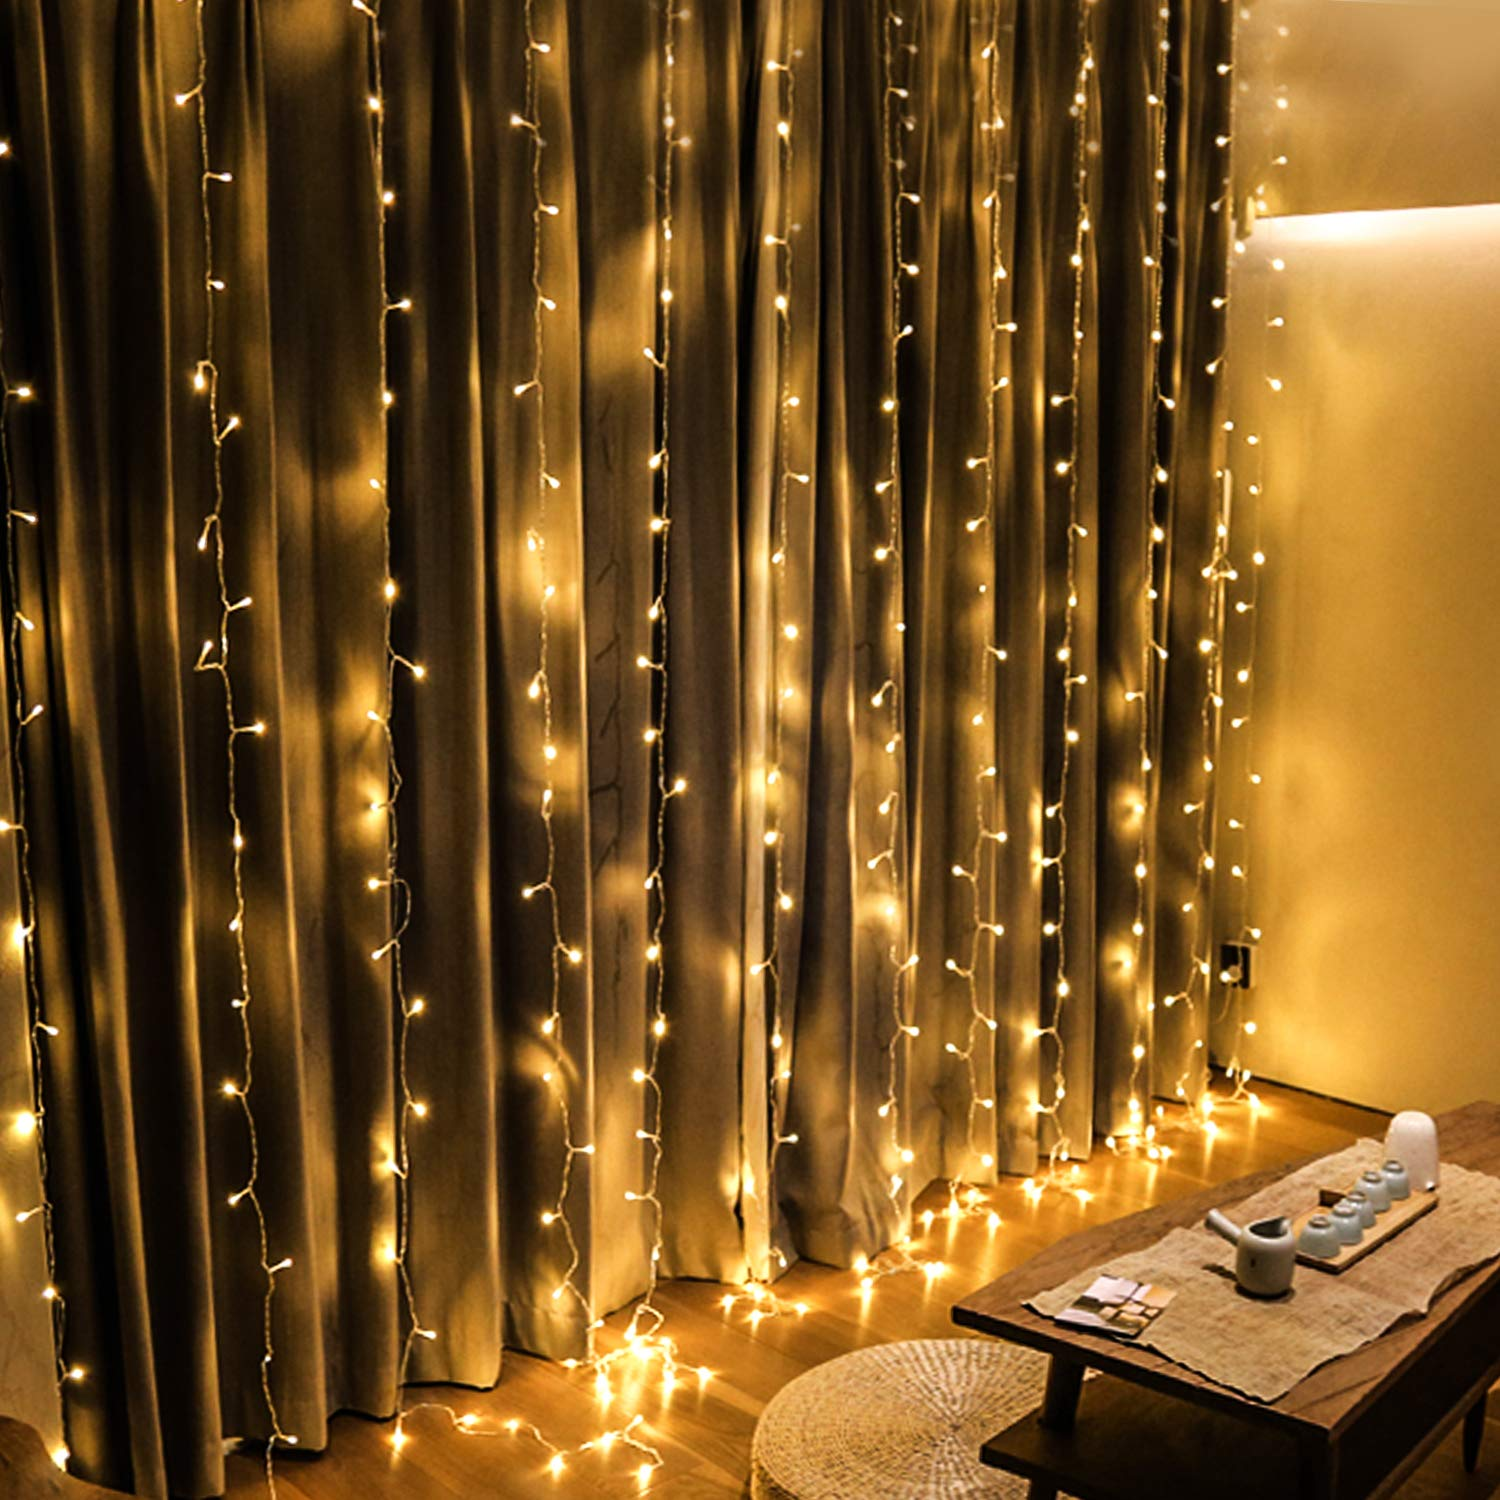 OMGAI Window Curtain Icicle String Lights of 300LED for Christmas Xmas  Wedding Party Home Decoration Fairy Lights Wedding Party Home Garden